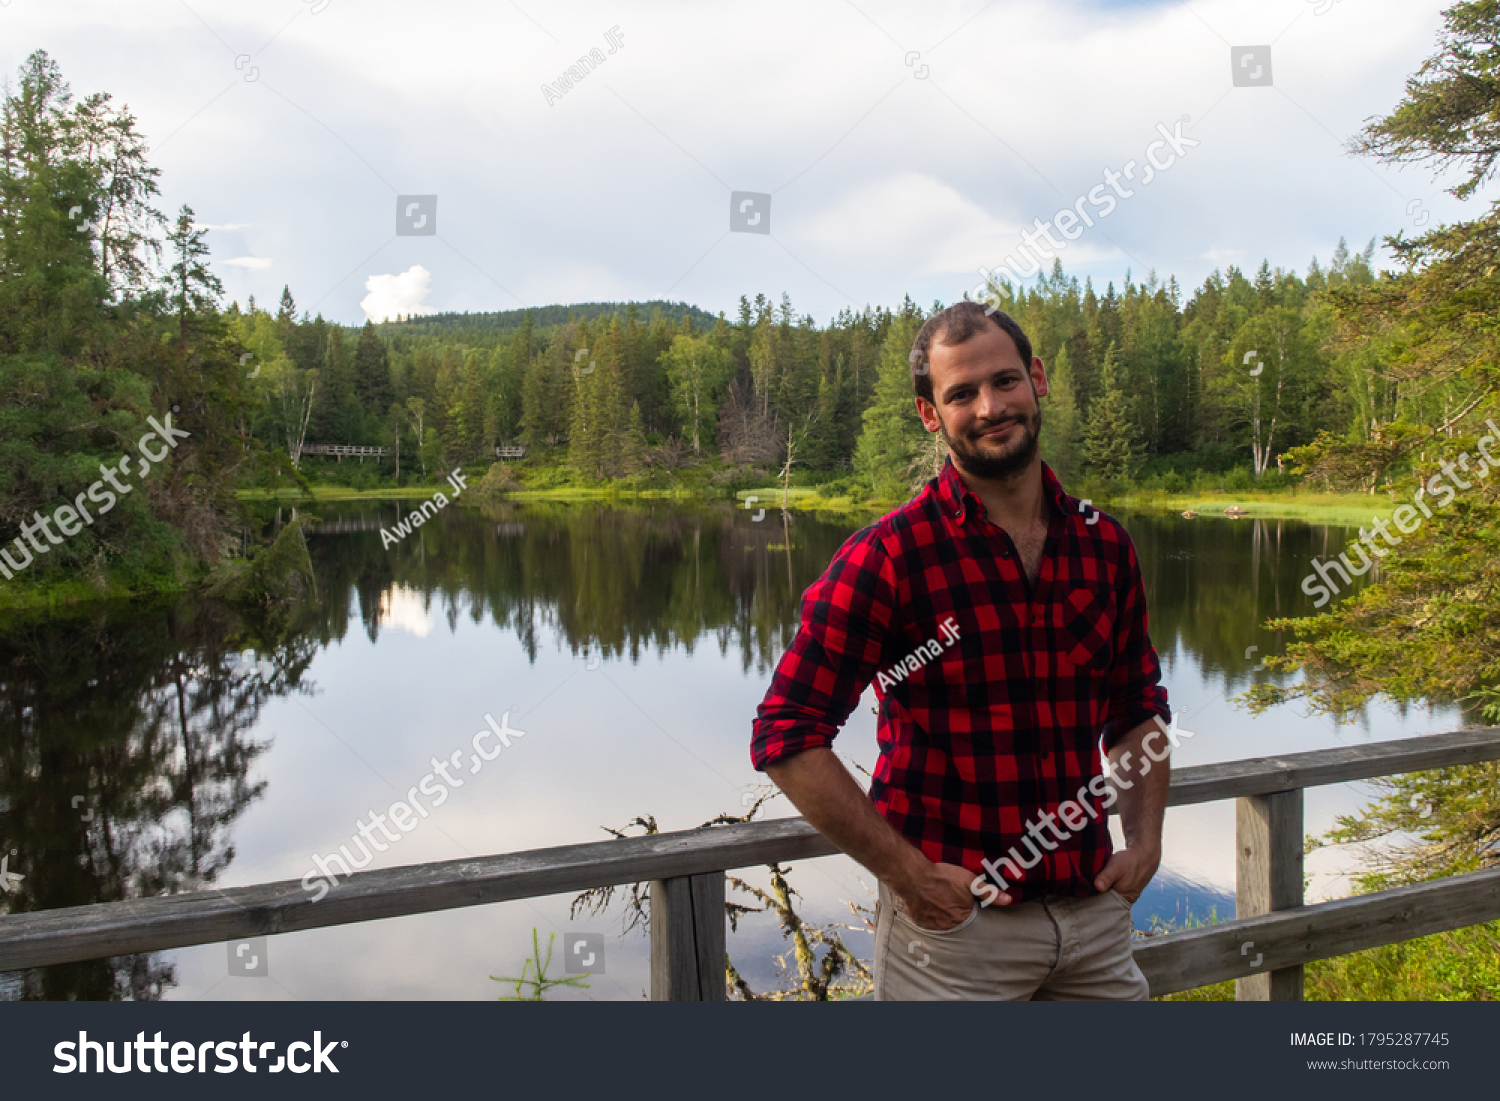 stock-photo-young-man-with-a-lumberjack-